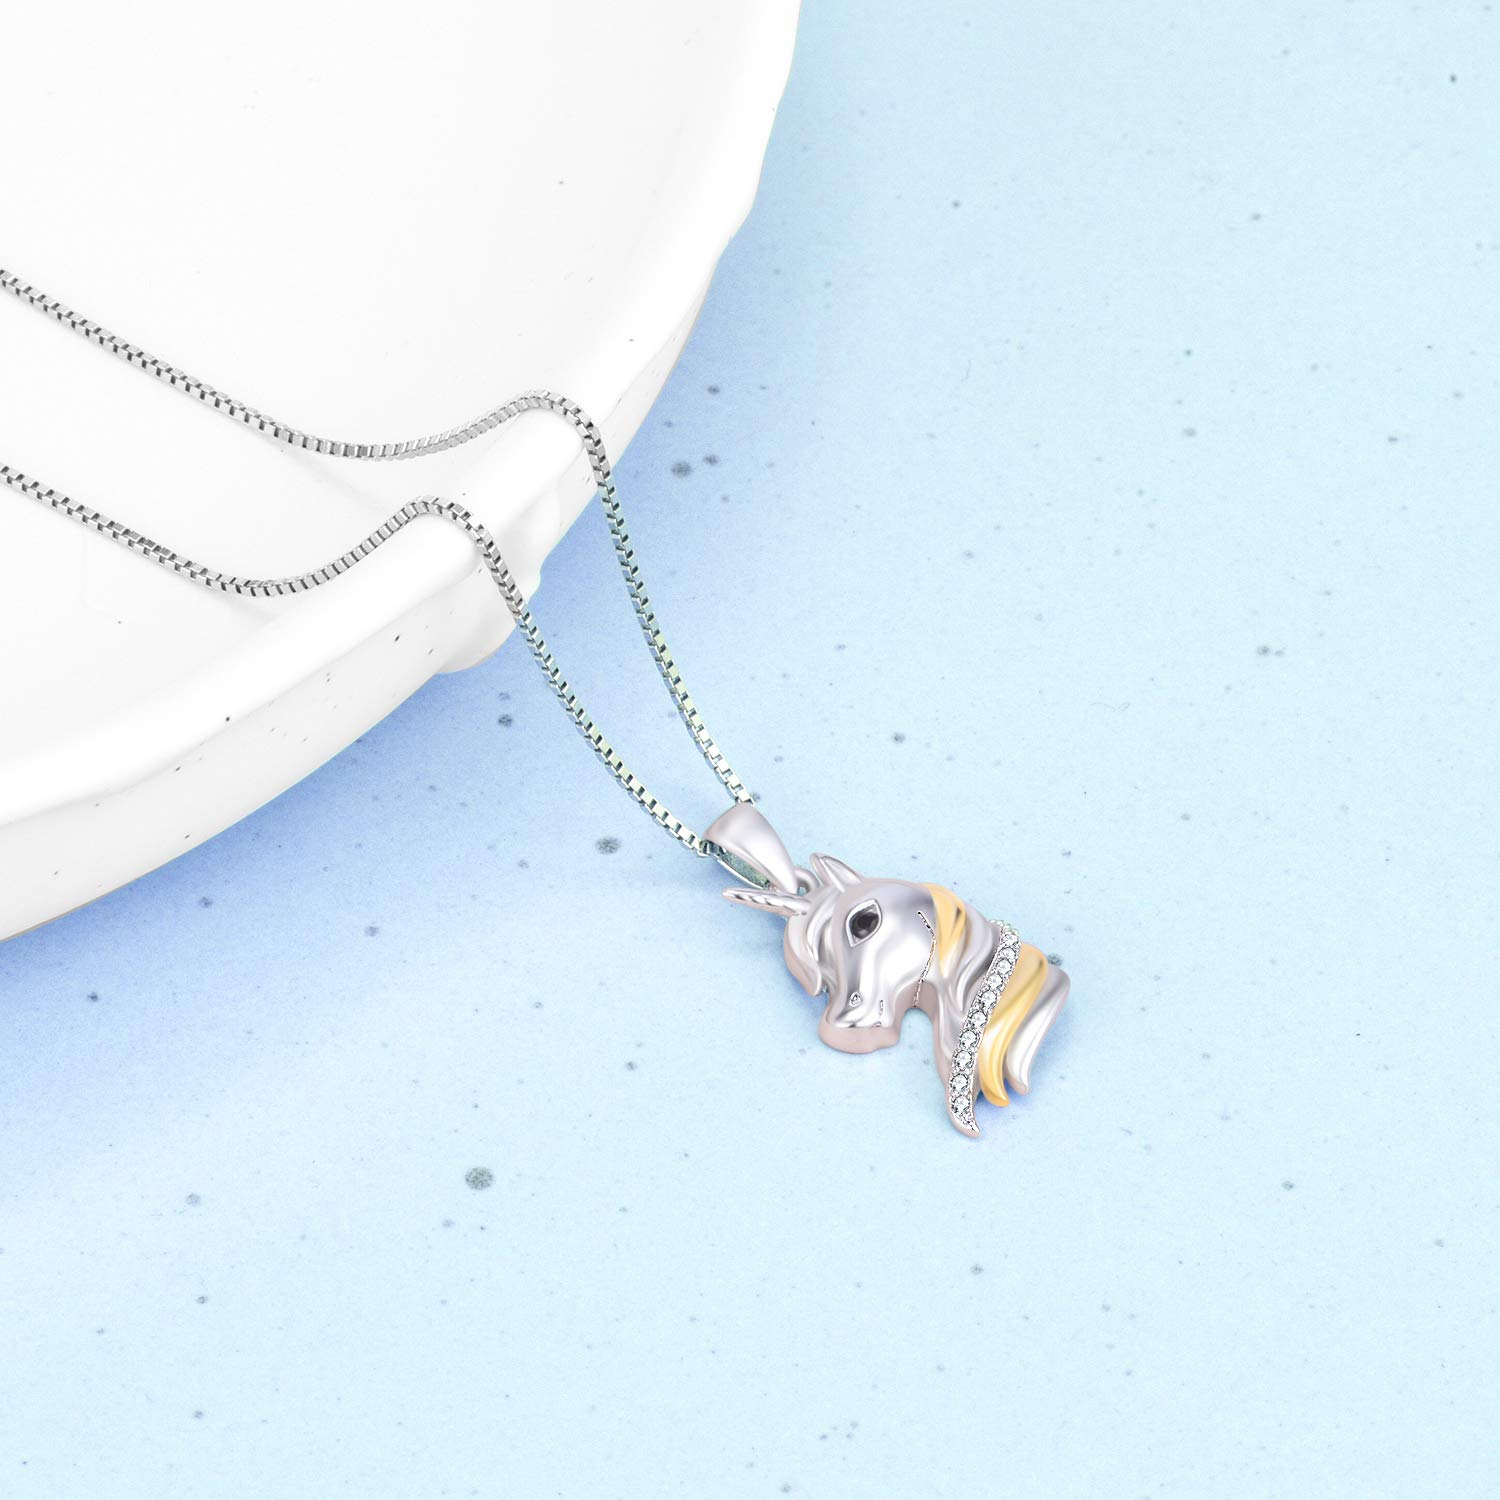 cc78a23cd Amazon.com: YFN Sterling Silver Unicorn Two-Tone Pendant Necklace for Women  Girls (Silver Unicorn Necklace): Jewelry